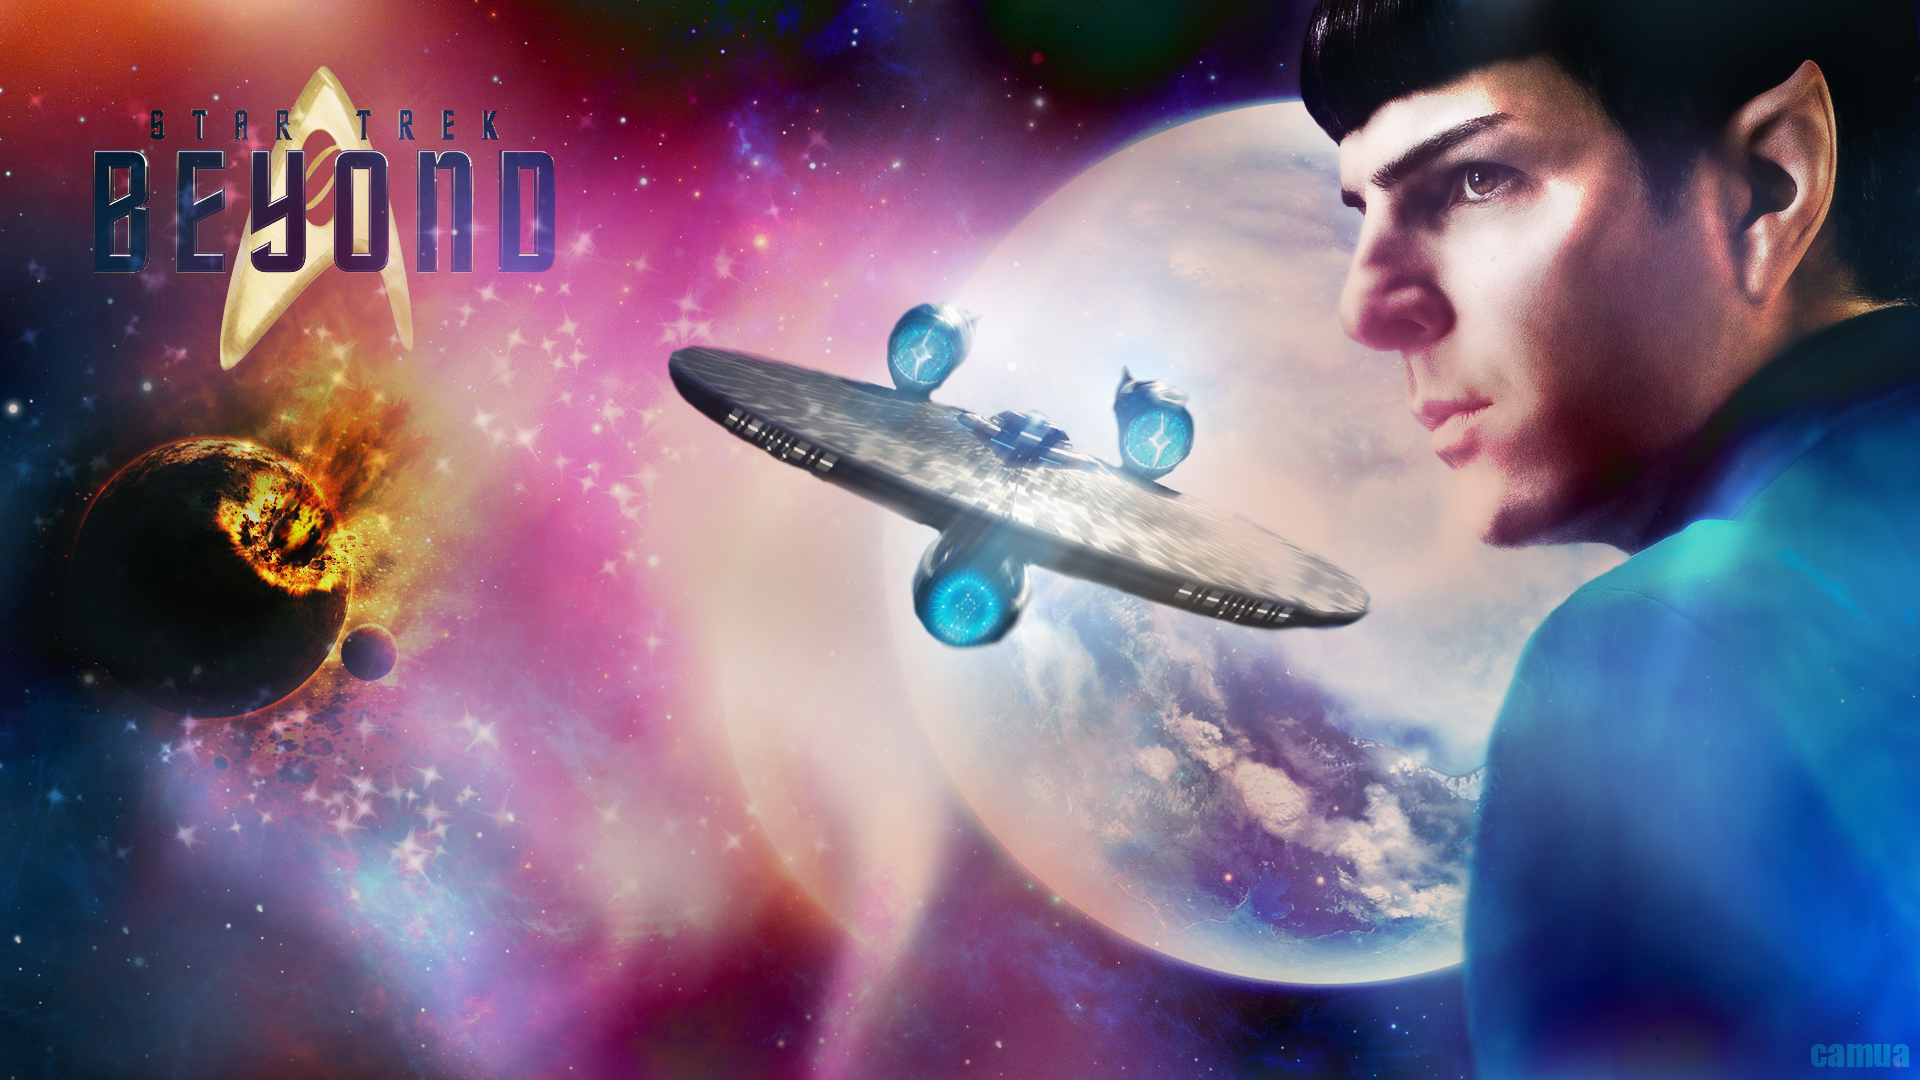 Ma galerie de mes creations graphiques Wallpaper-star-trek-beyond